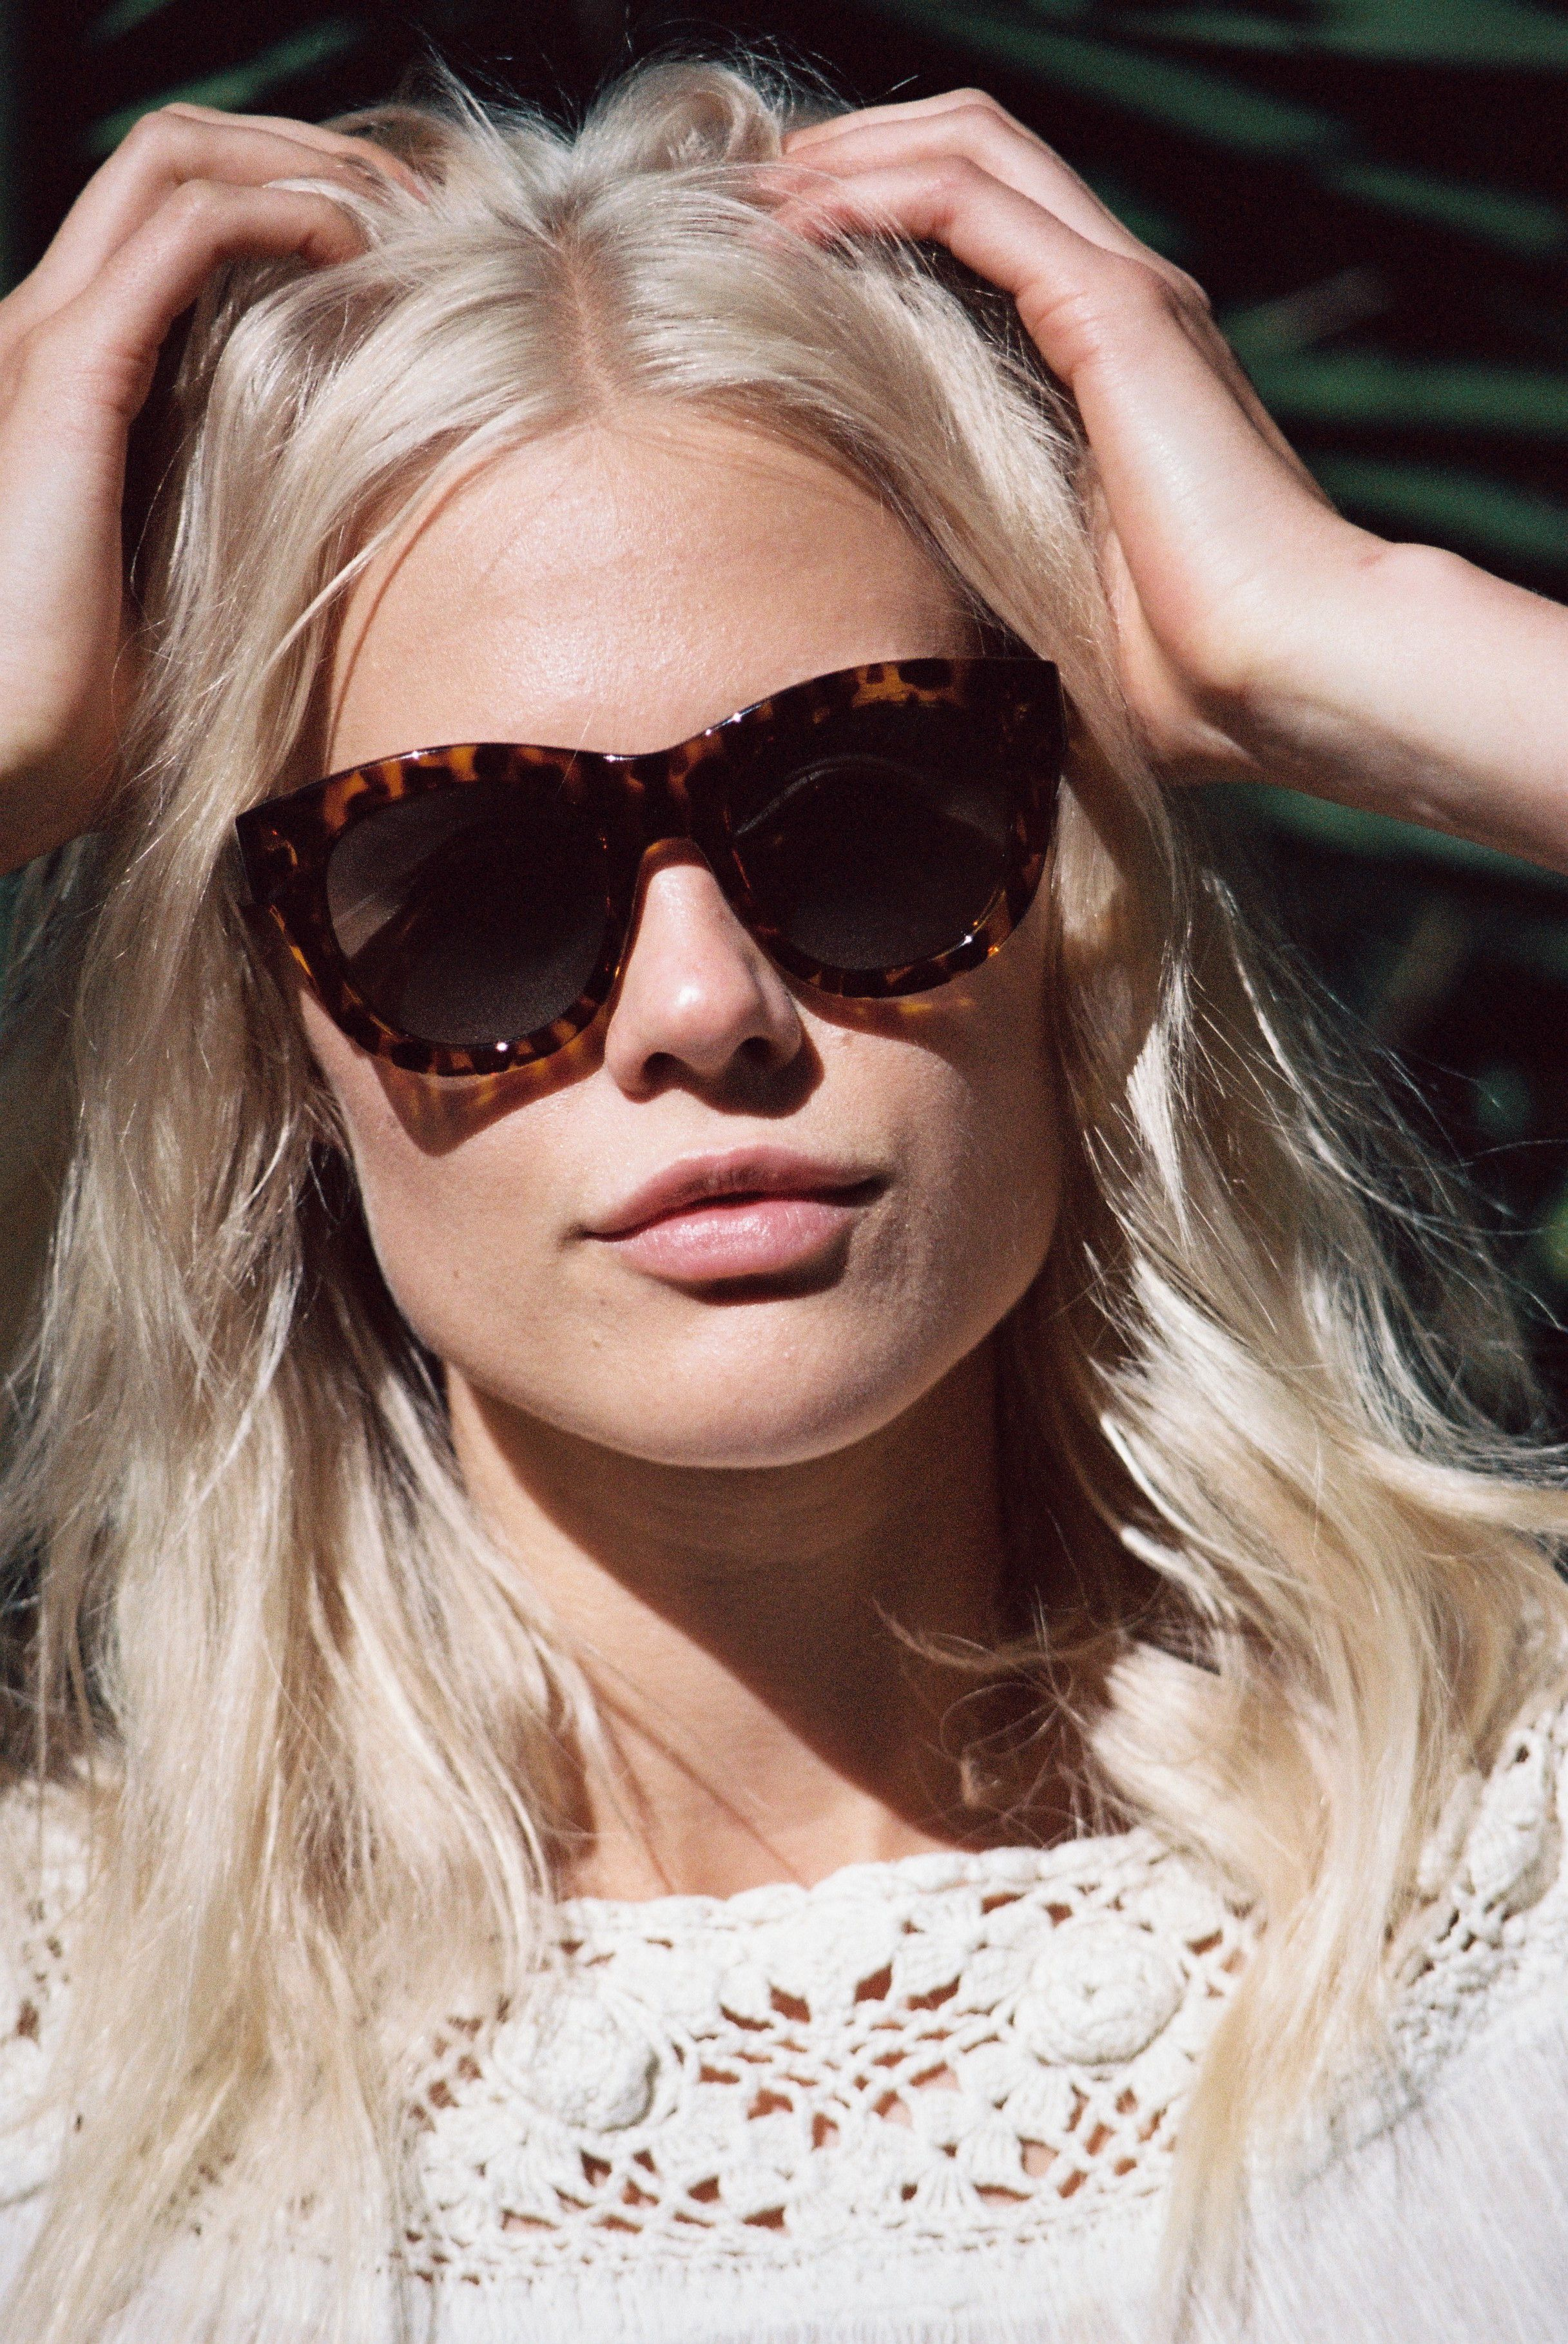 Becca hiller dblanc eyewear ss 2016 campaign hq photo shoot new images